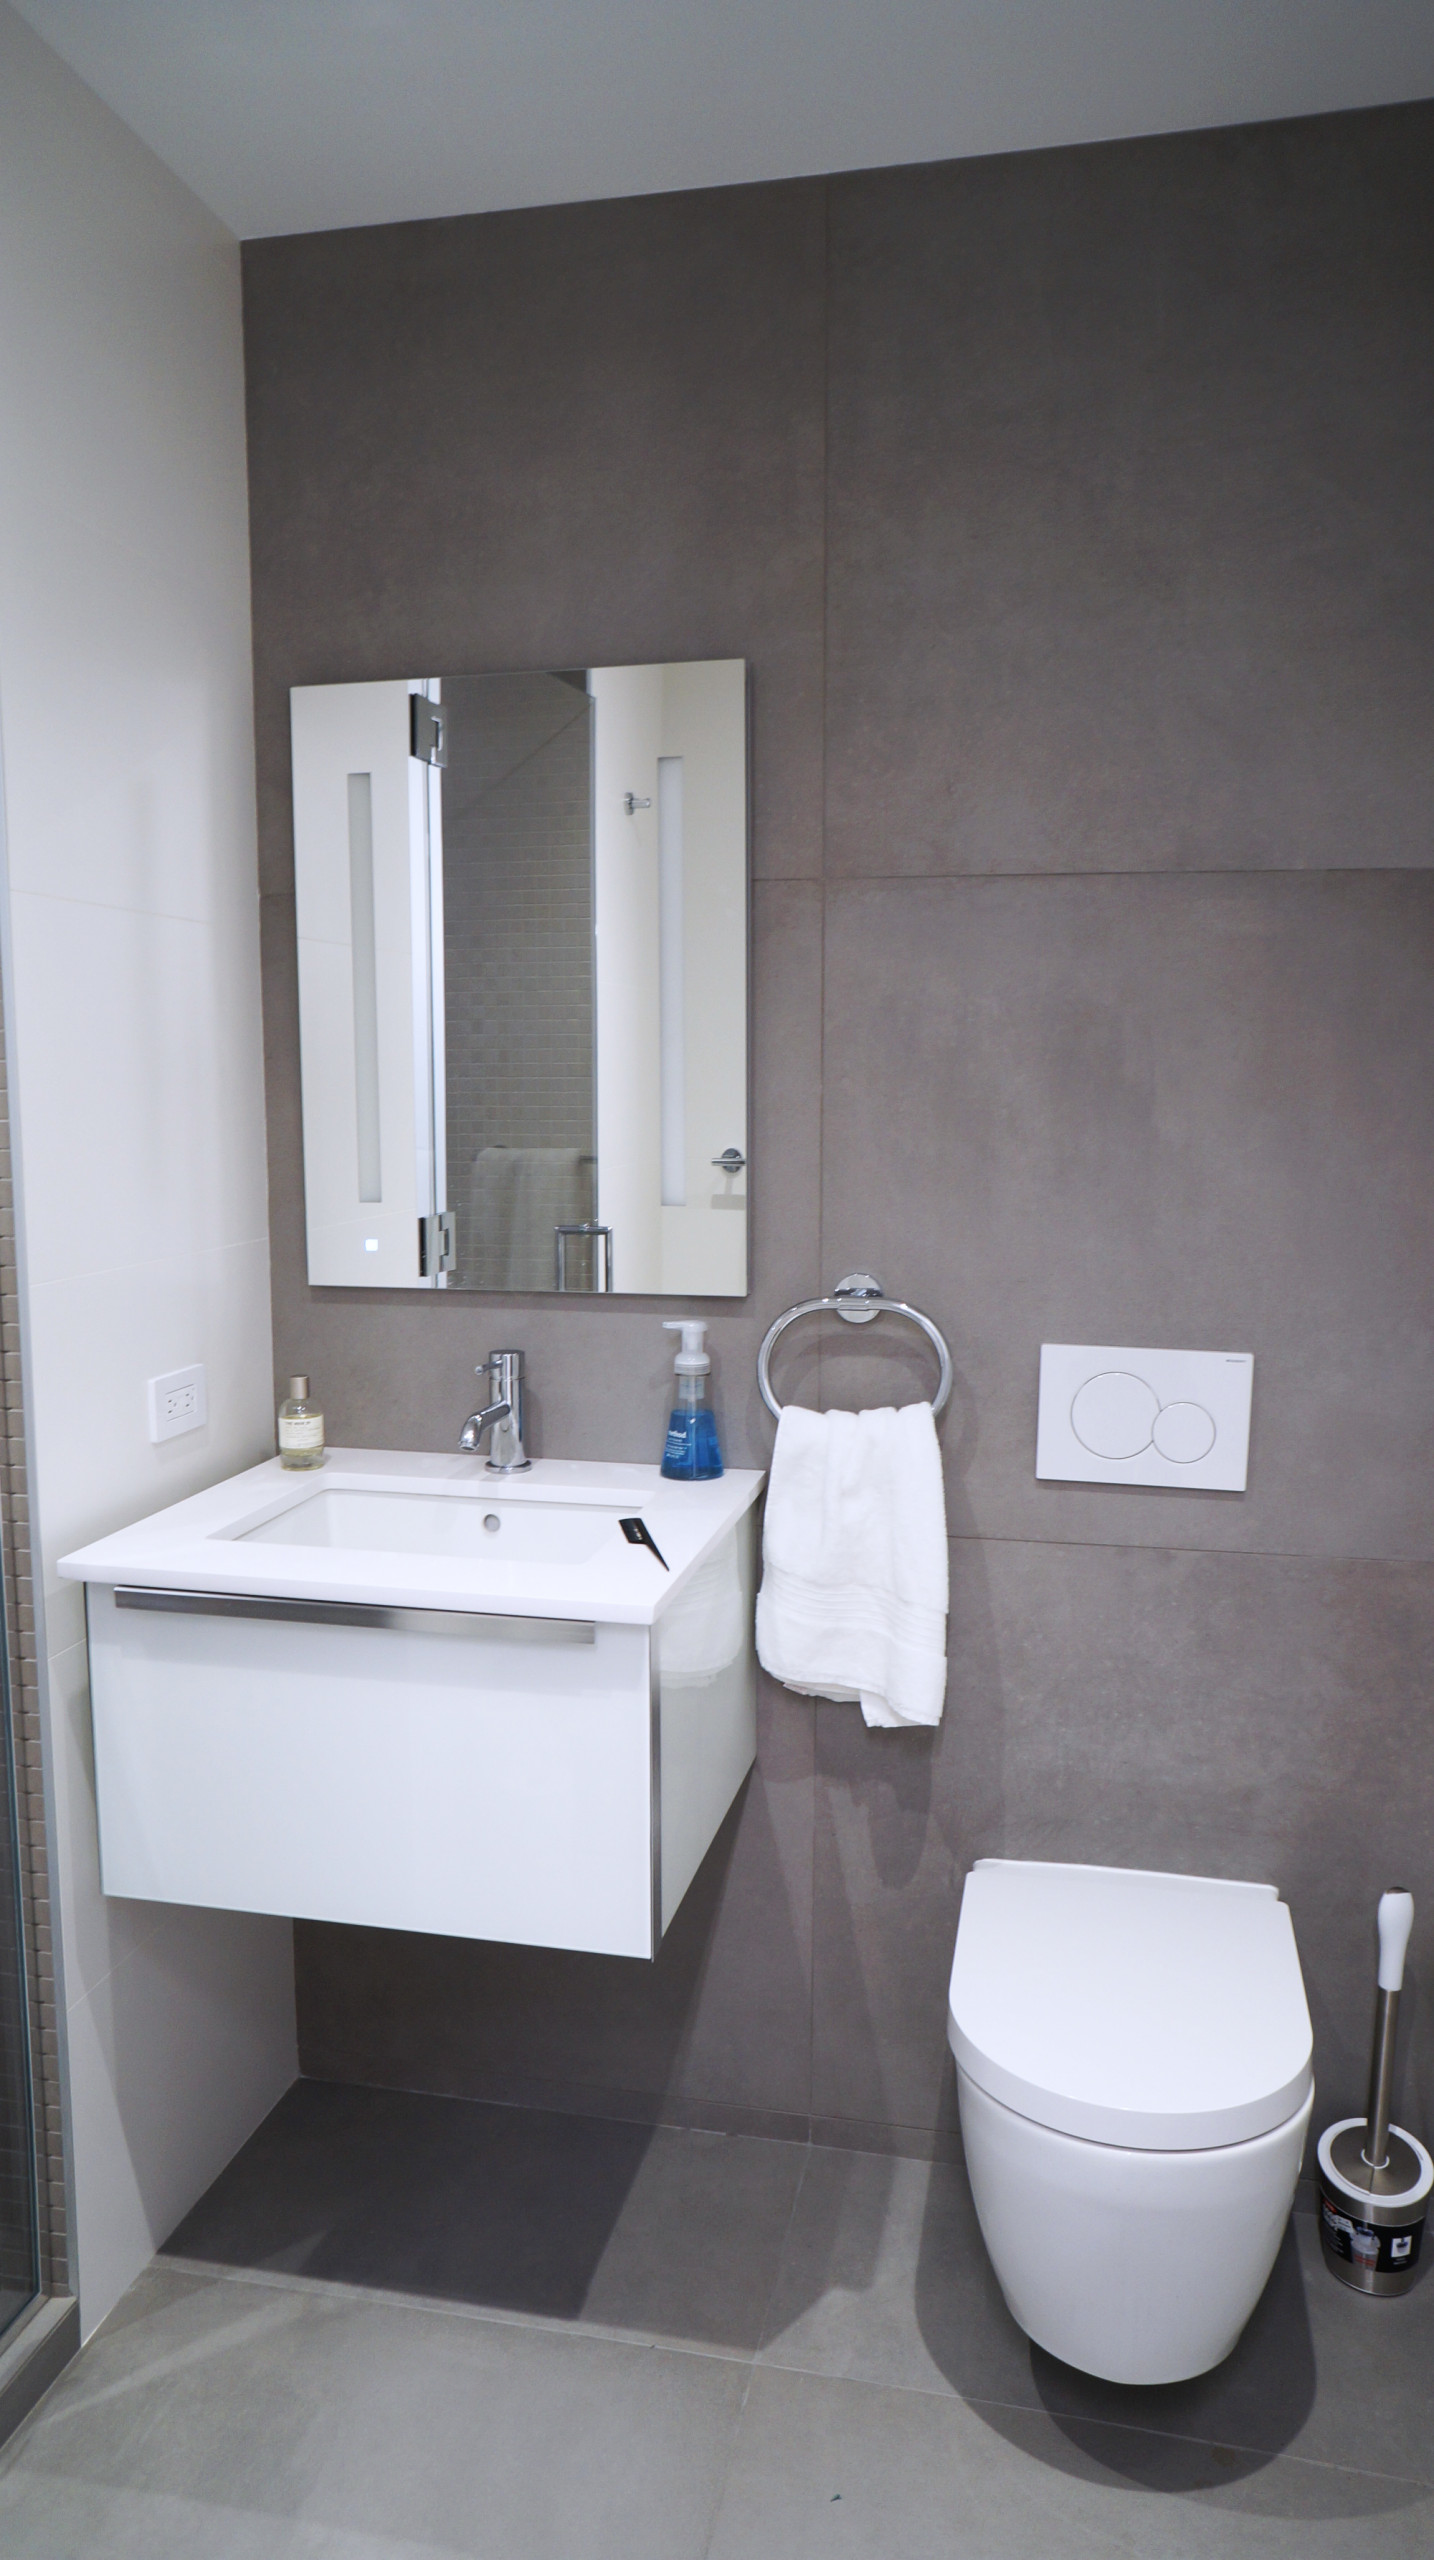 VIEW - Master Bathroom with Large Format Wall Tile